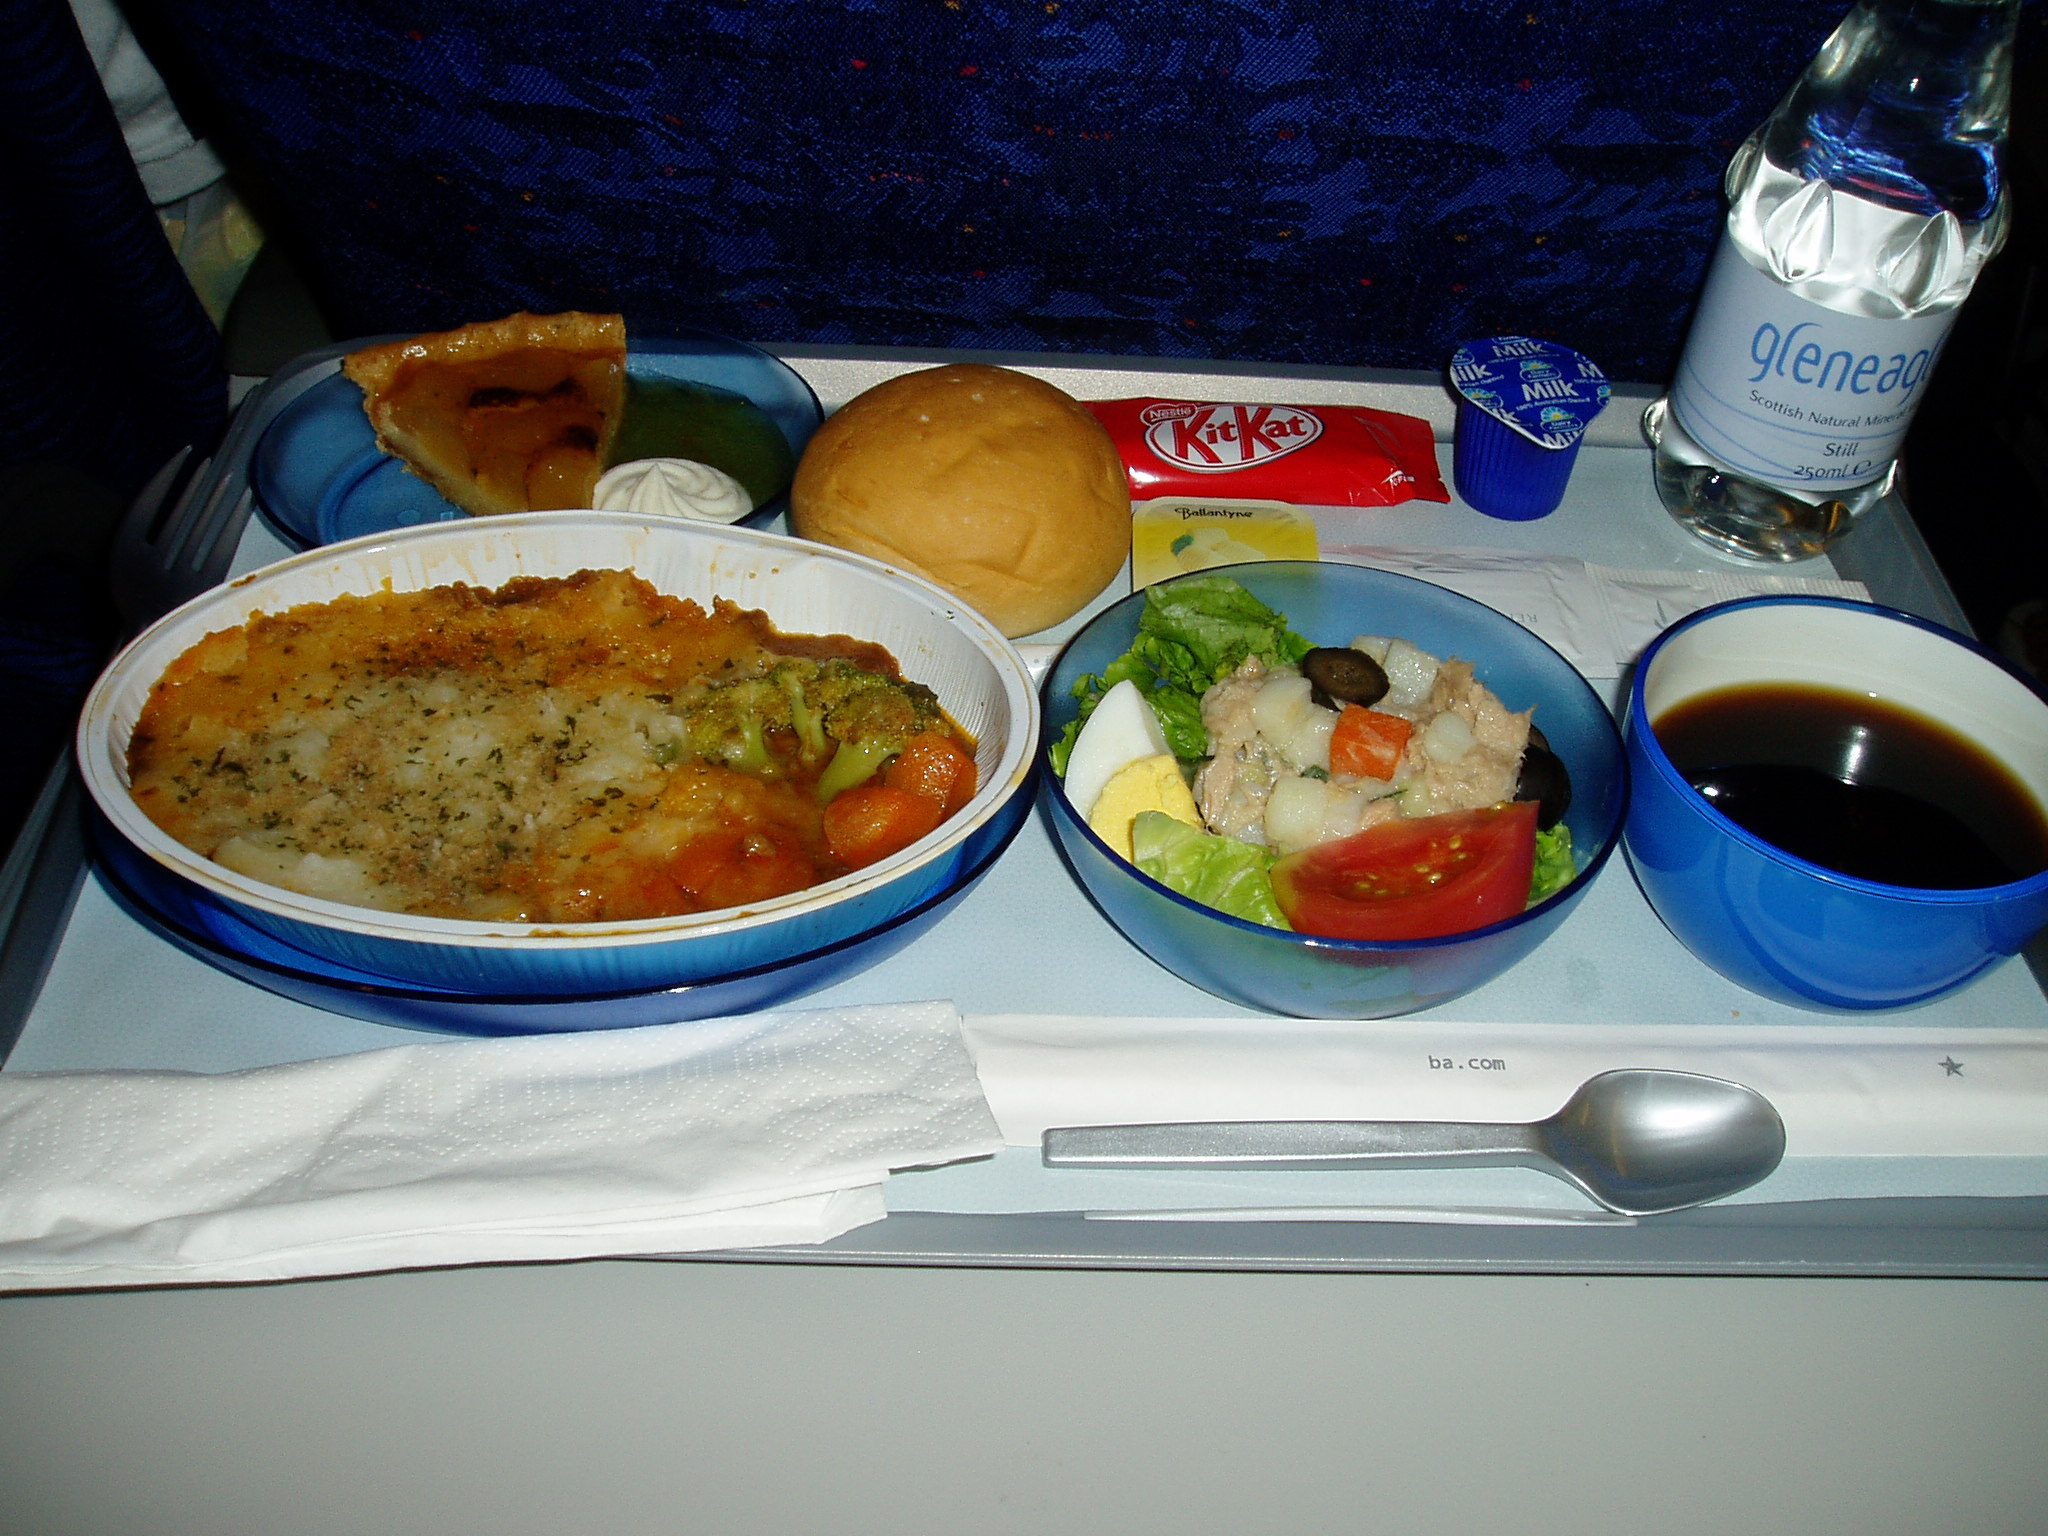 File:A Meal In Planes Of British Airways.jpg - Wikimedia Commons